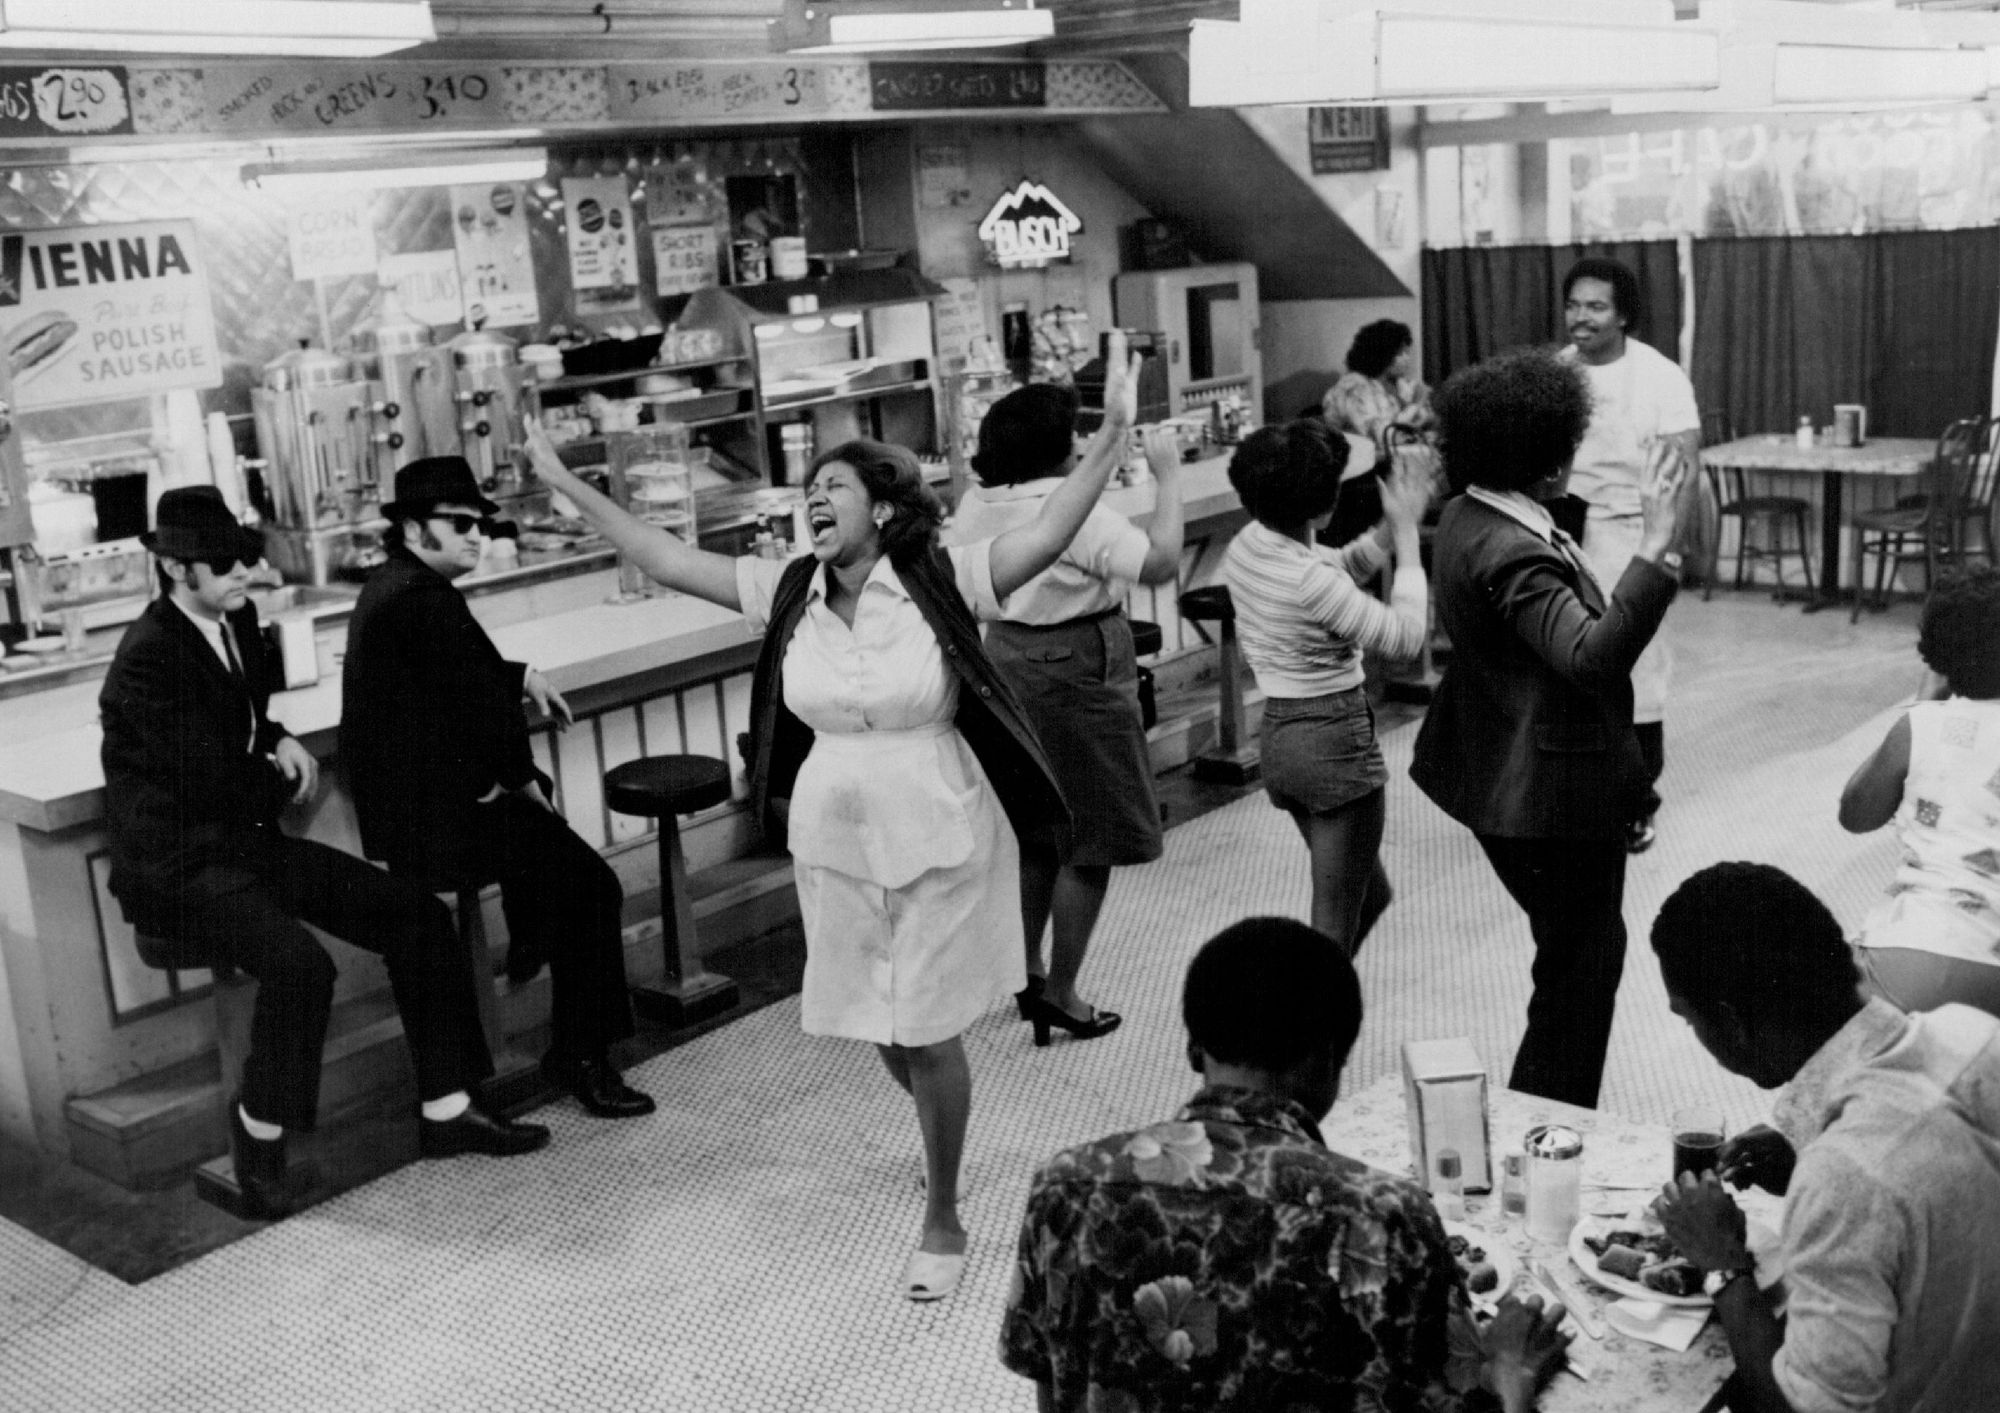 John Belushi, right, and Dan Aykroyd in 'The Blues Brothers' watch Aretha Franklin, as the owner of the Soul Food Cafe, sing 'Think!'